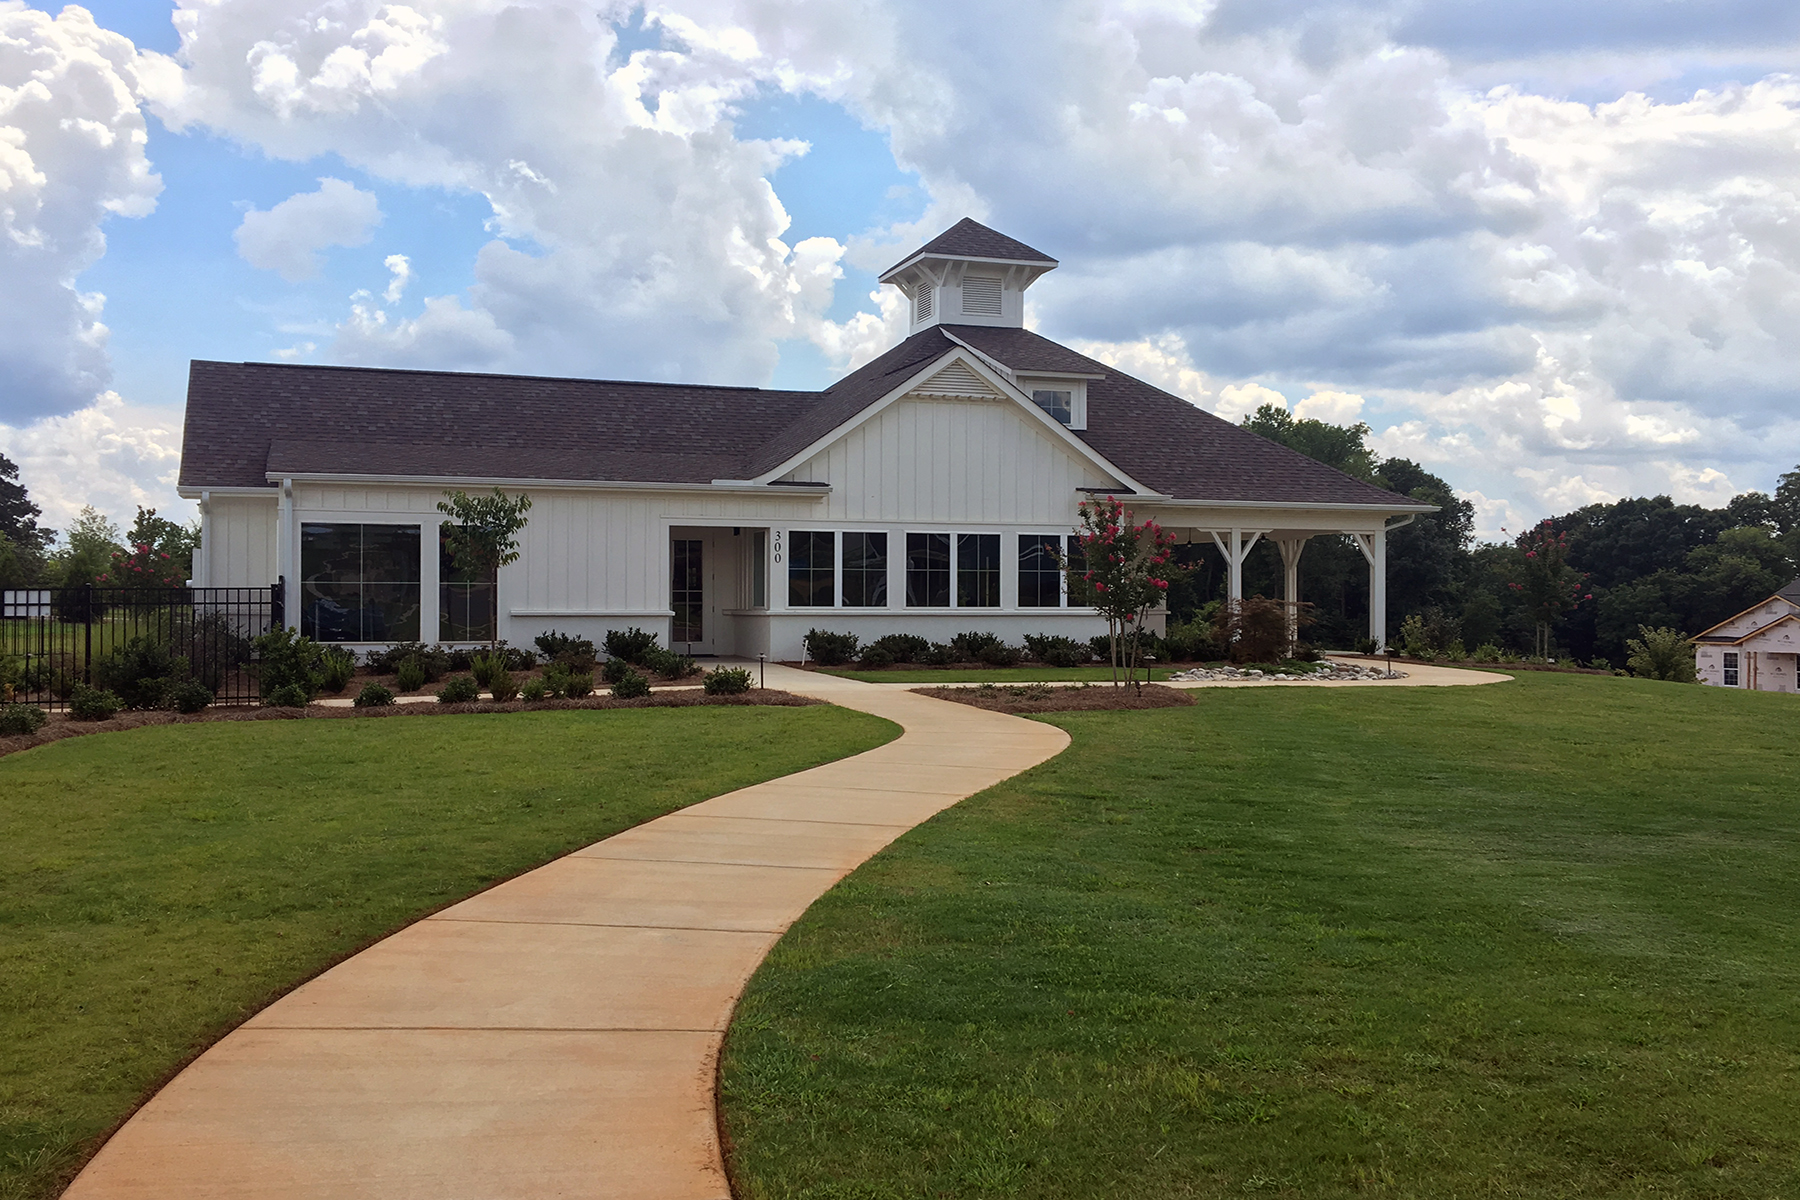 McLean Clubhouse